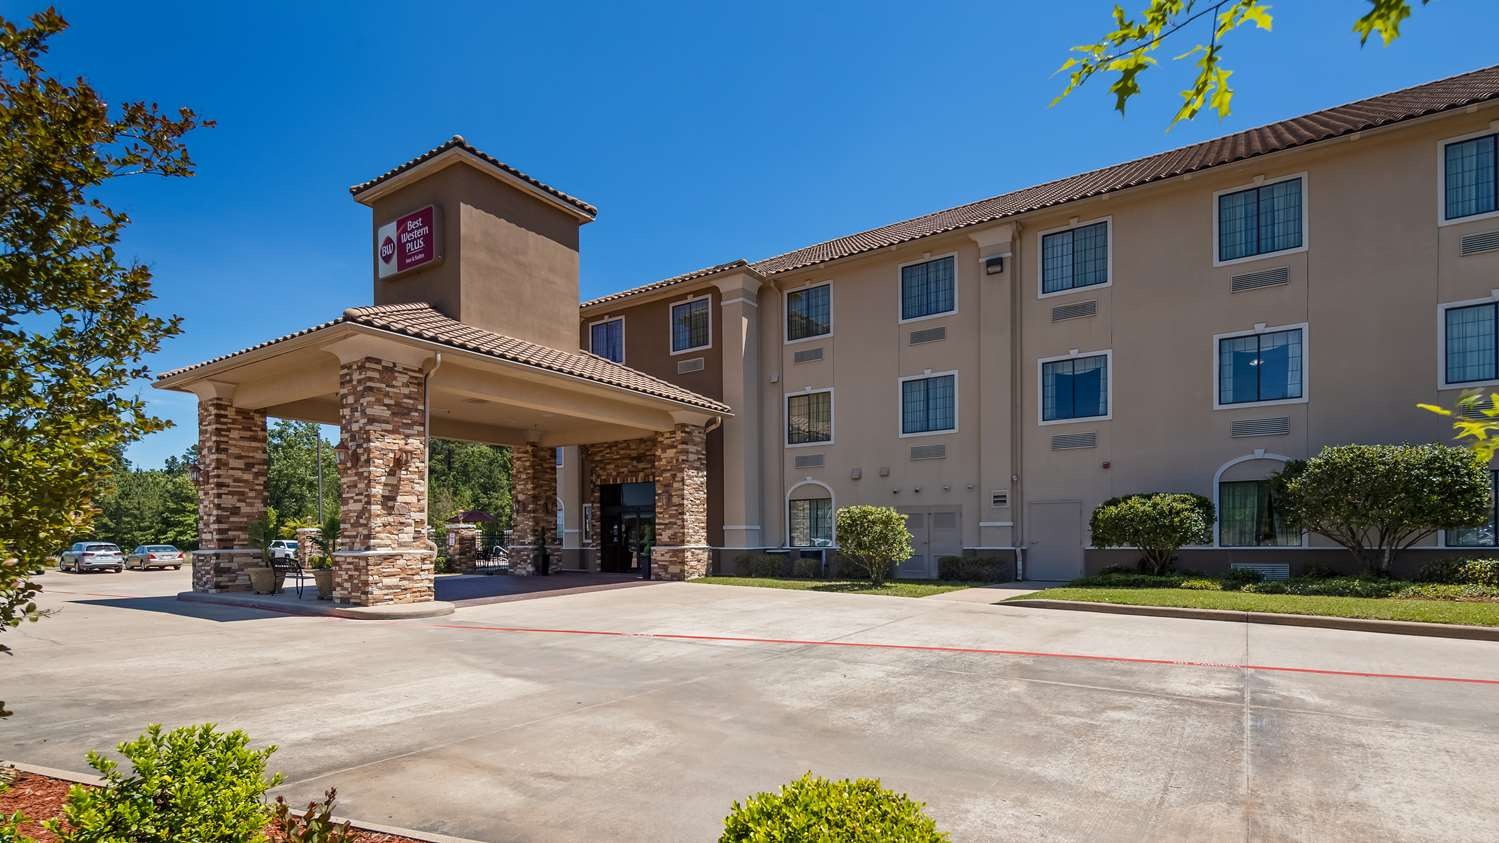 Welcome to the Best Western Plus Crown Colony Inn & Suites!